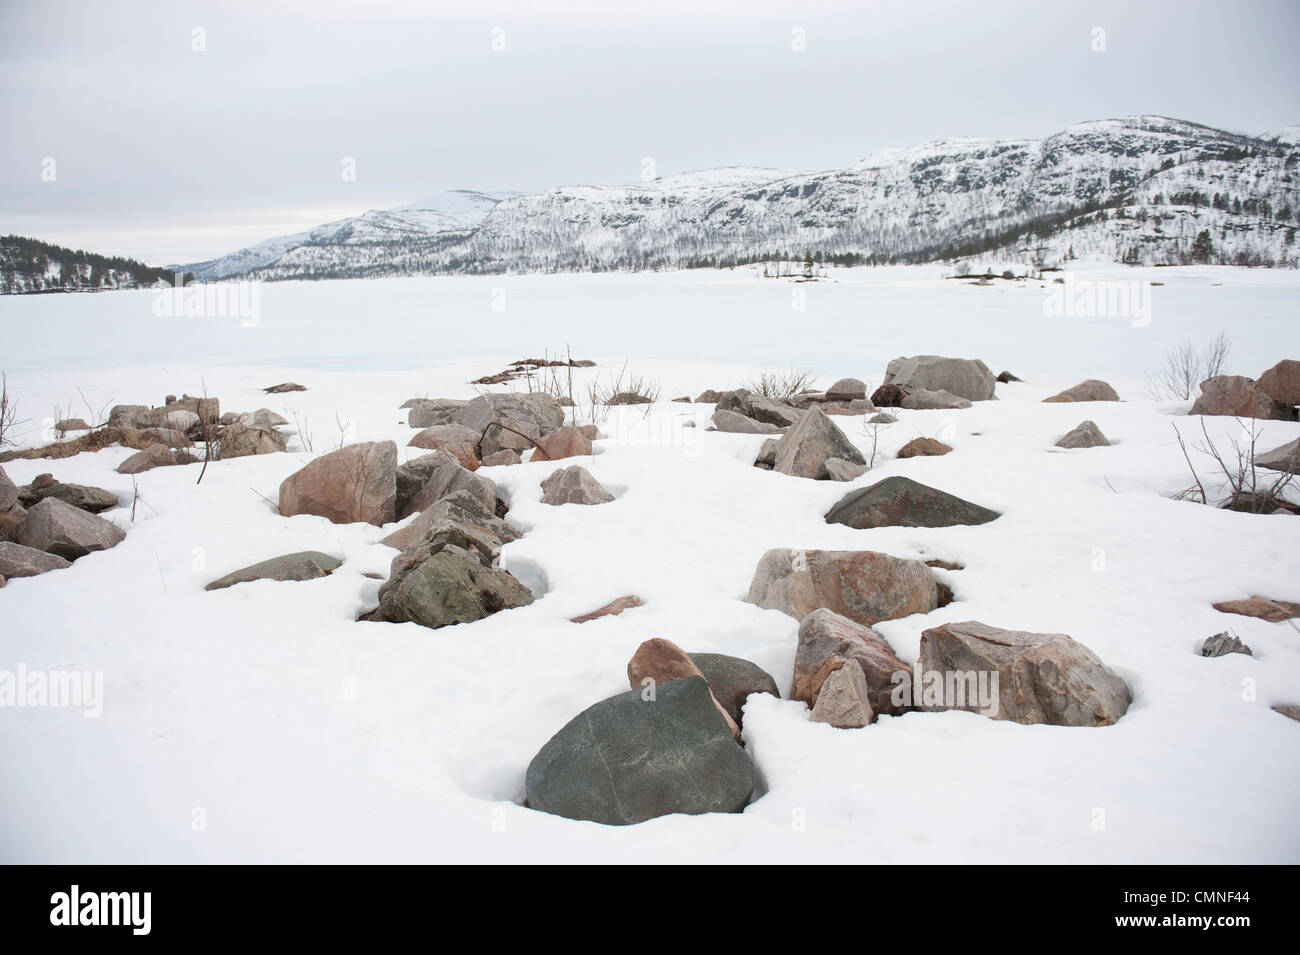 Snow-covered granite rocks at the banks of Breivevatnet, a lake near Hovden and Breive in Aust-Agder, South Norway - Stock Image